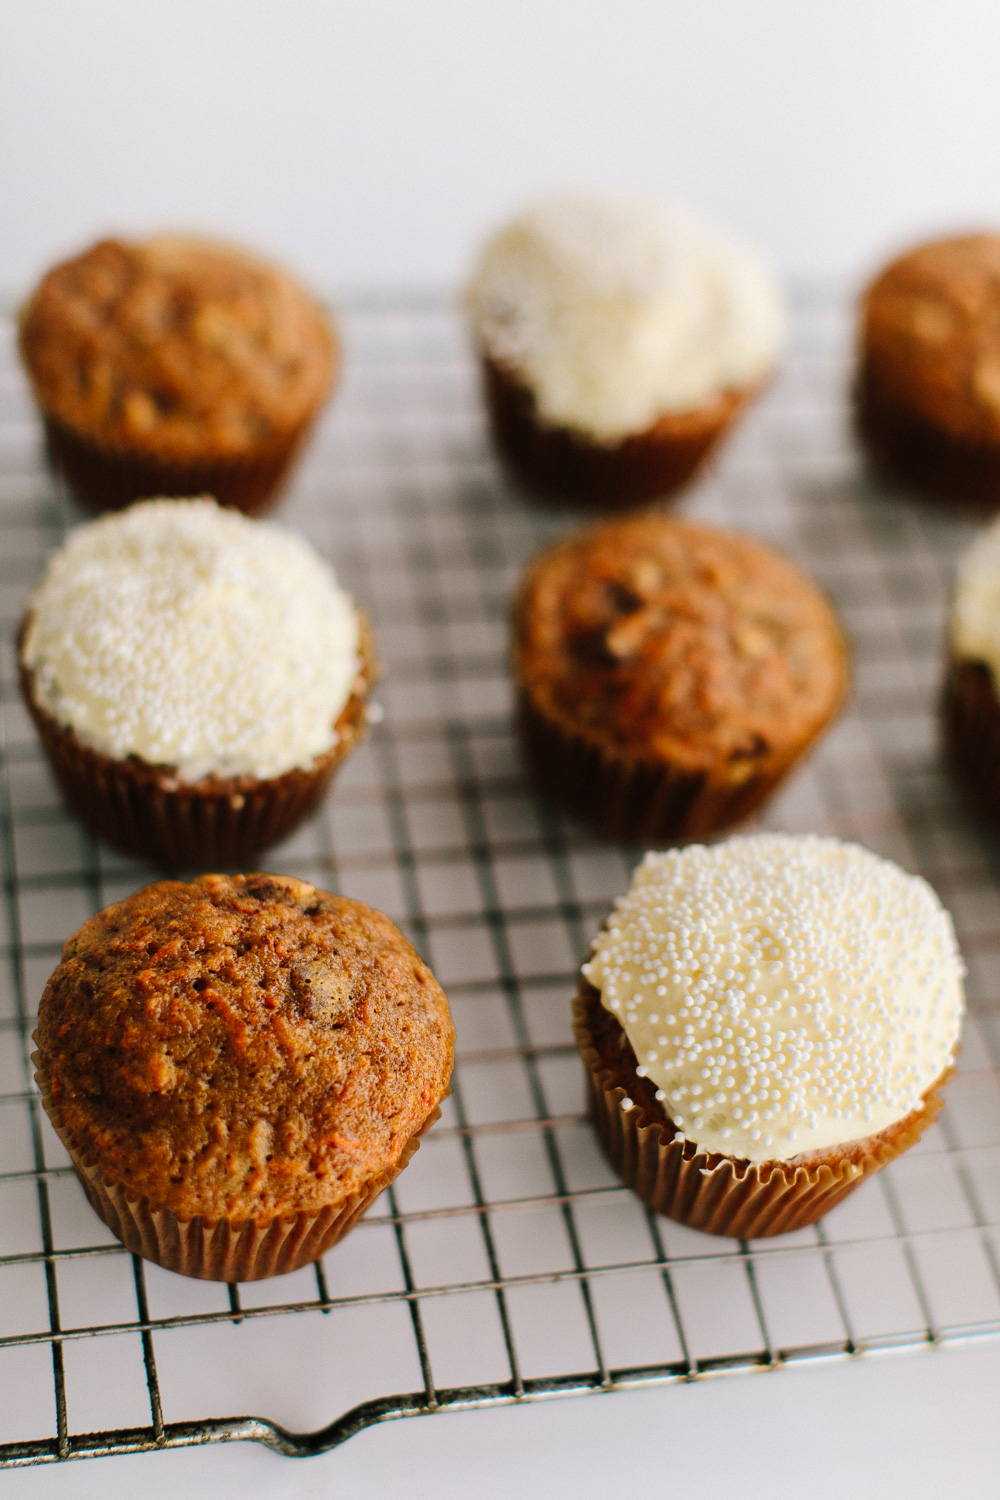 Brown Butter Carrot Cake Cupcakes | Becca Bakes www.becca-bakes.com